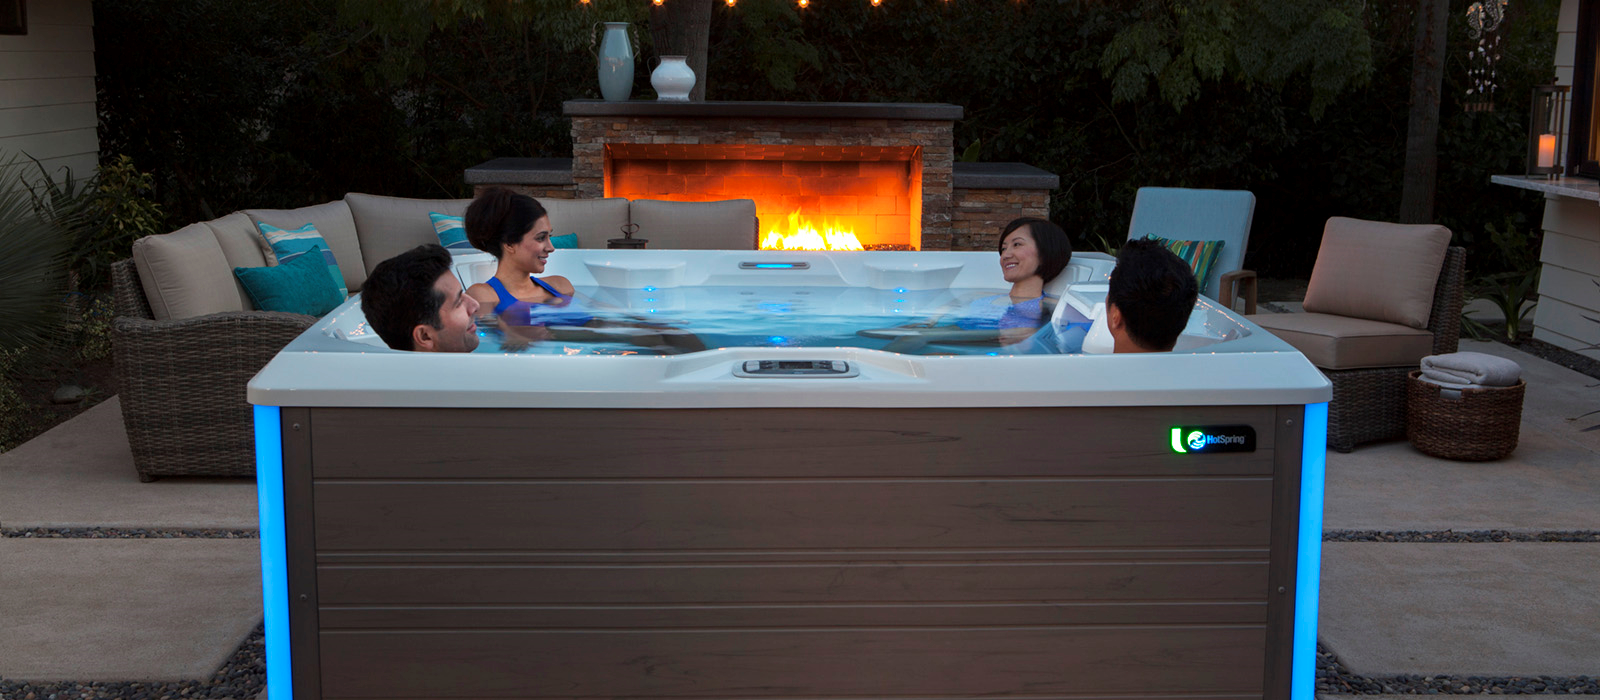 What is the Best Time of Year to Buy a Hot Tub?